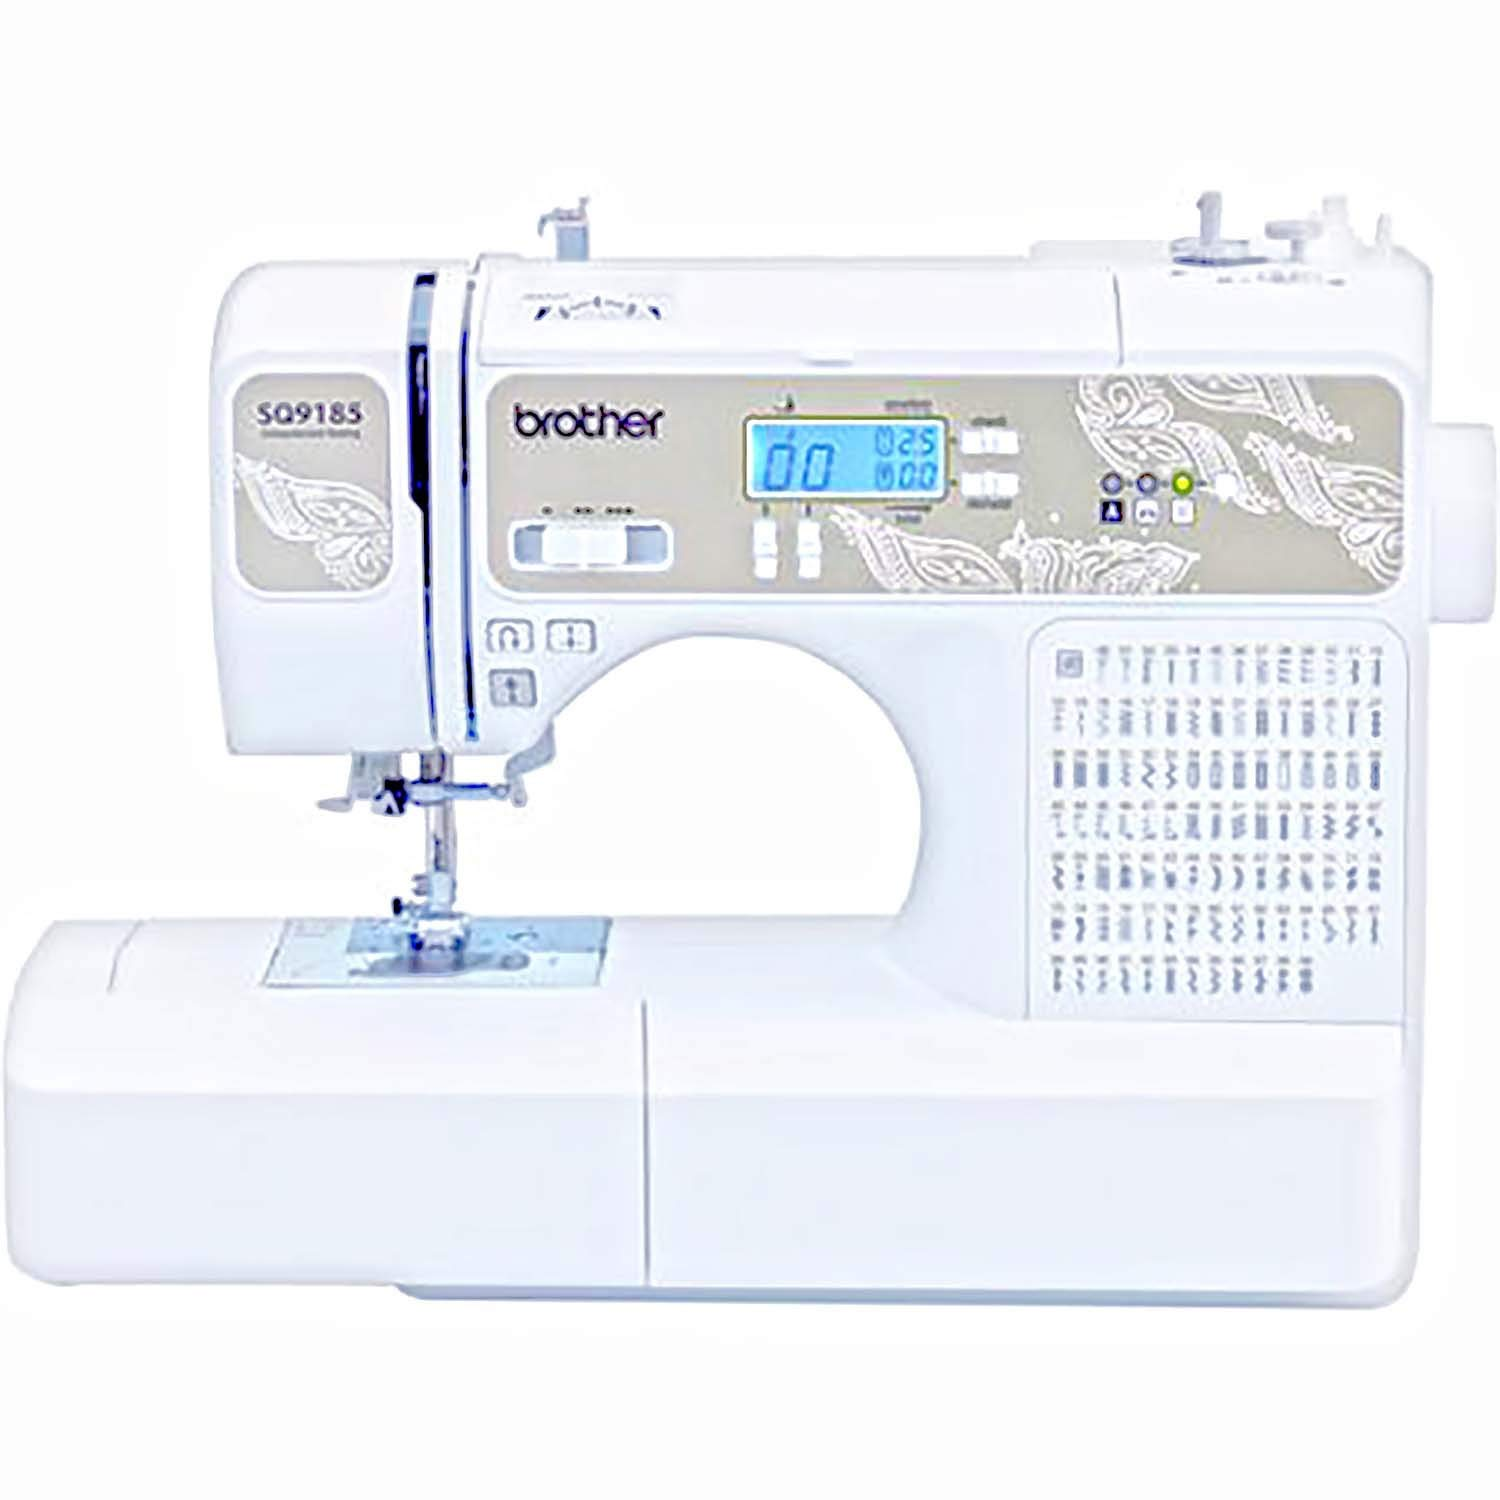 Brother Sewing Refurbished Computerized Quilting SQ9185 Machine